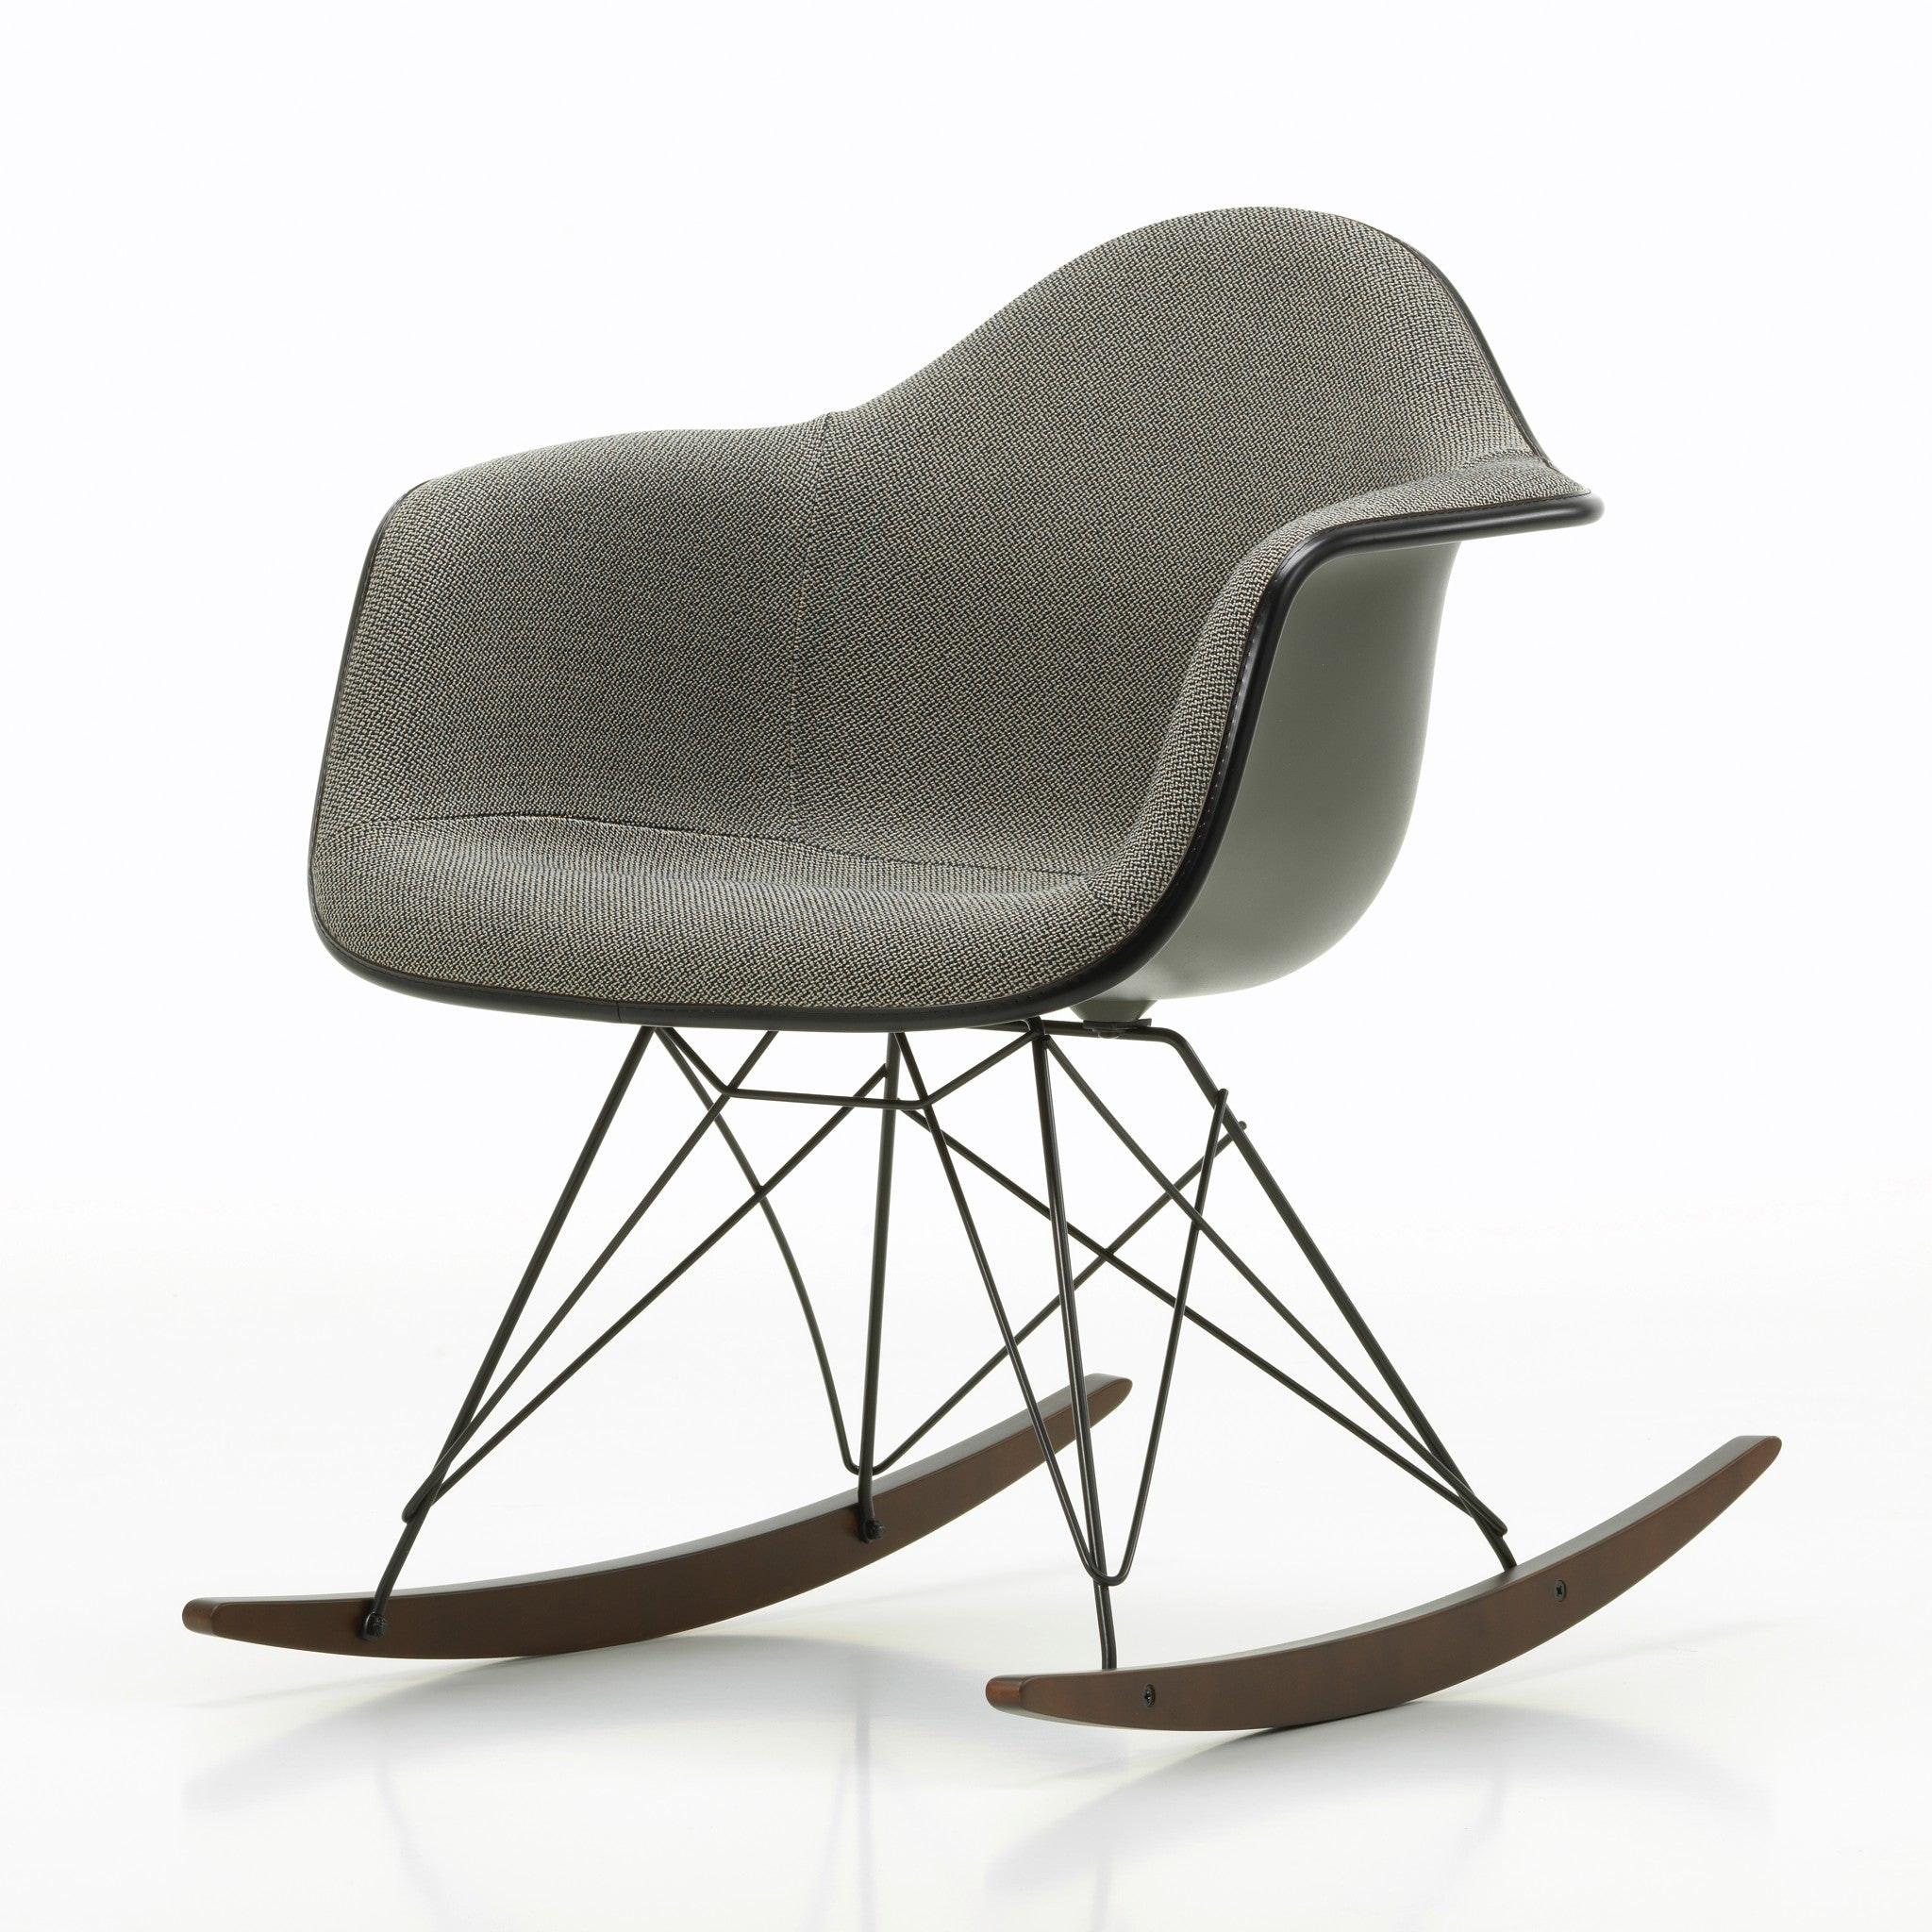 Eames Plastic Rocking Chair RAR Upholstered by Vitra